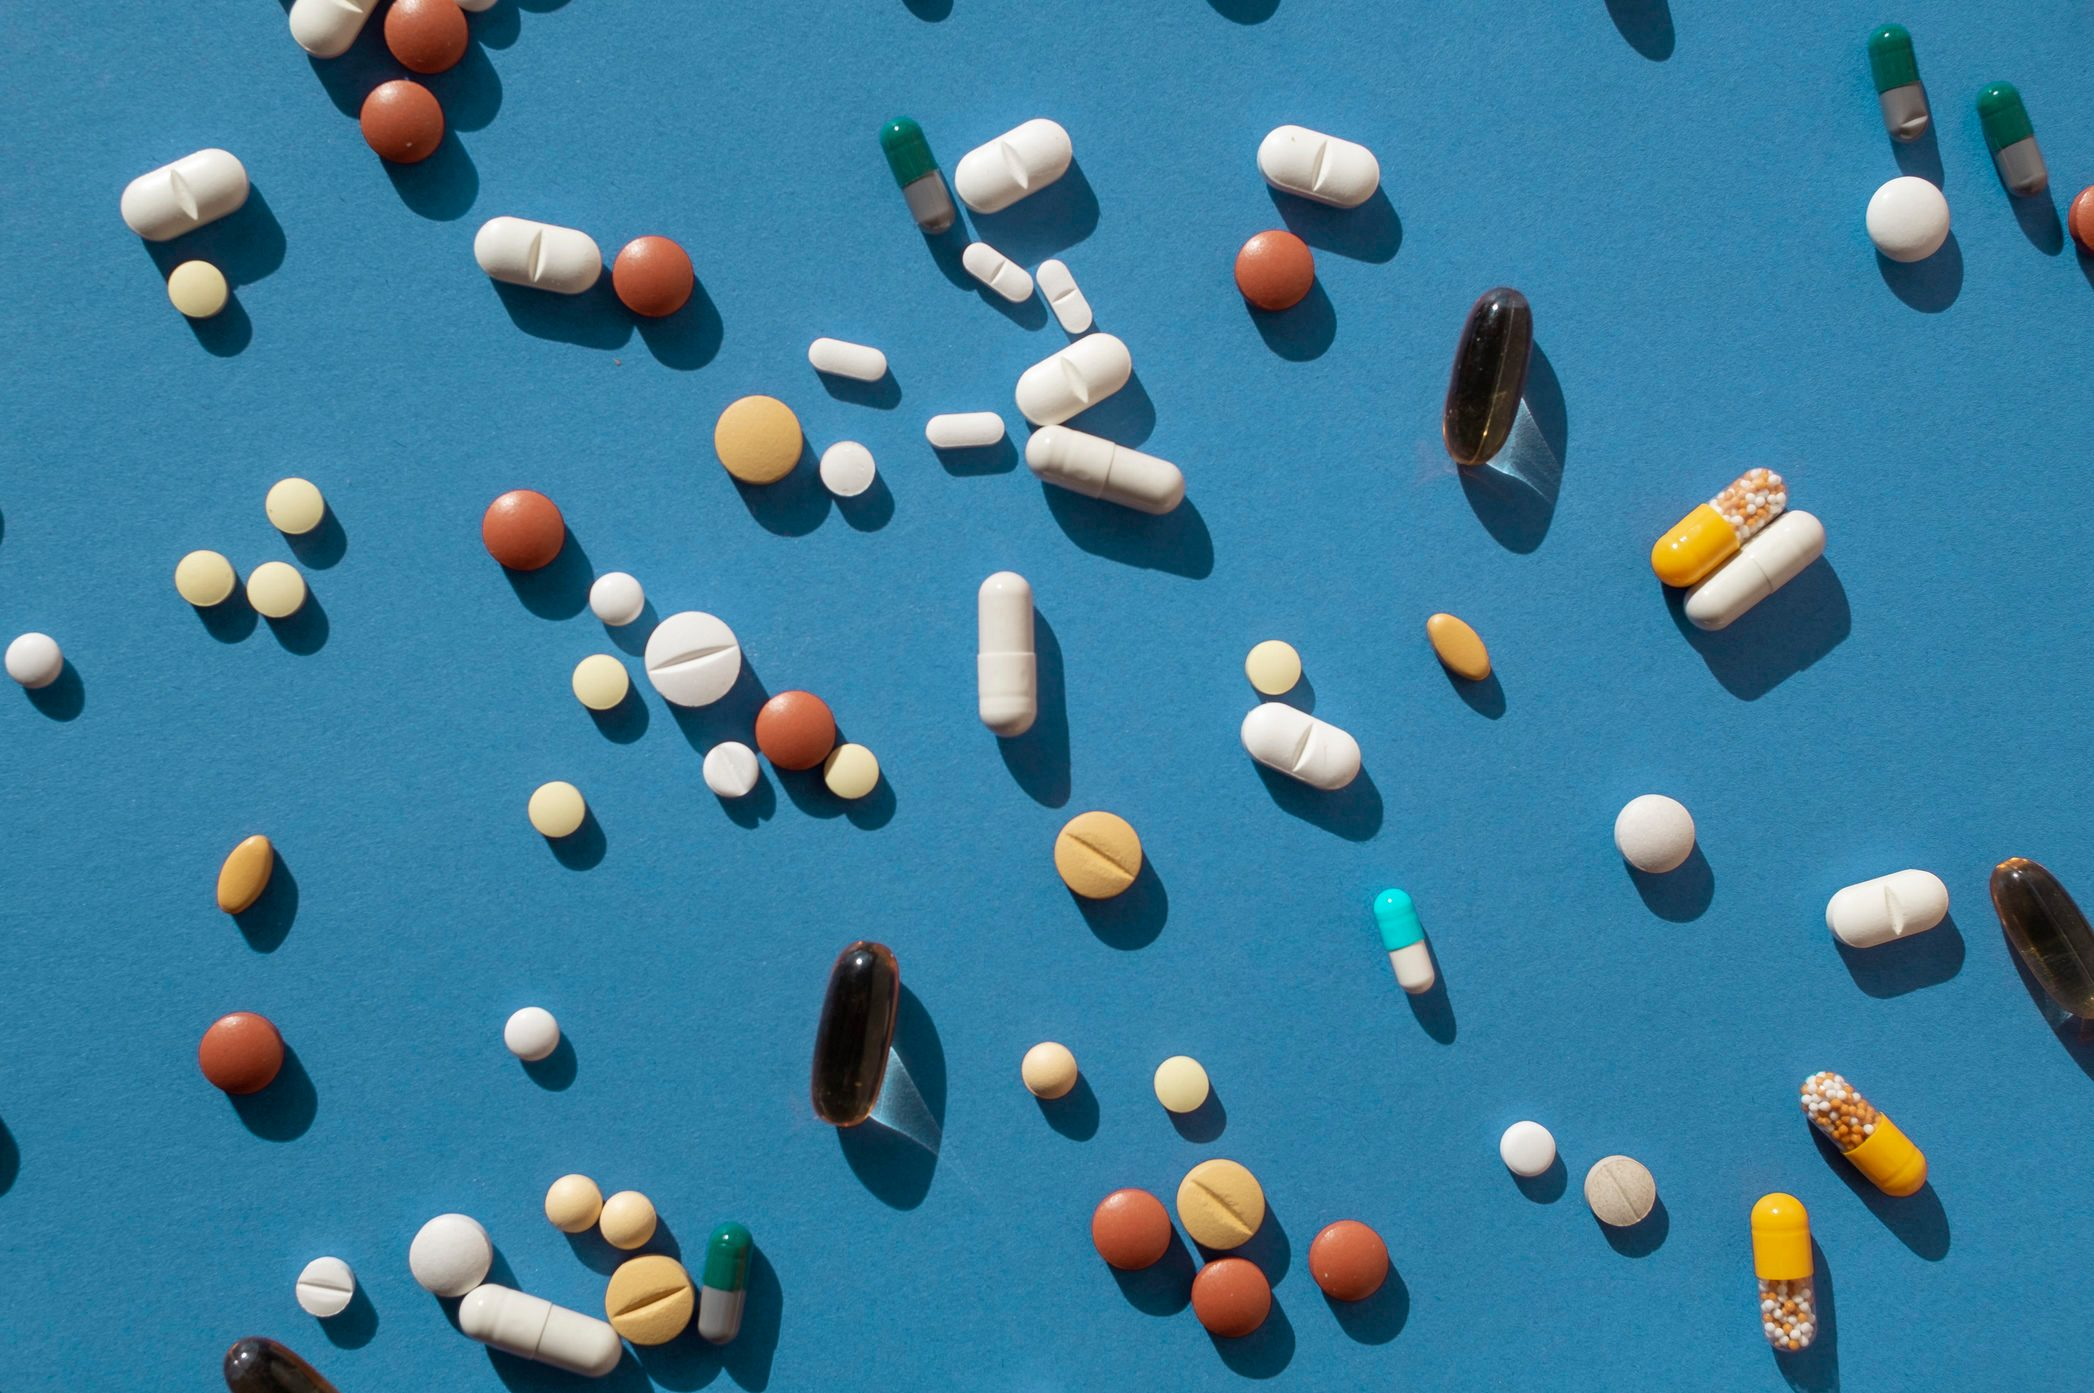 Top view of various pills and tablets on the blue background